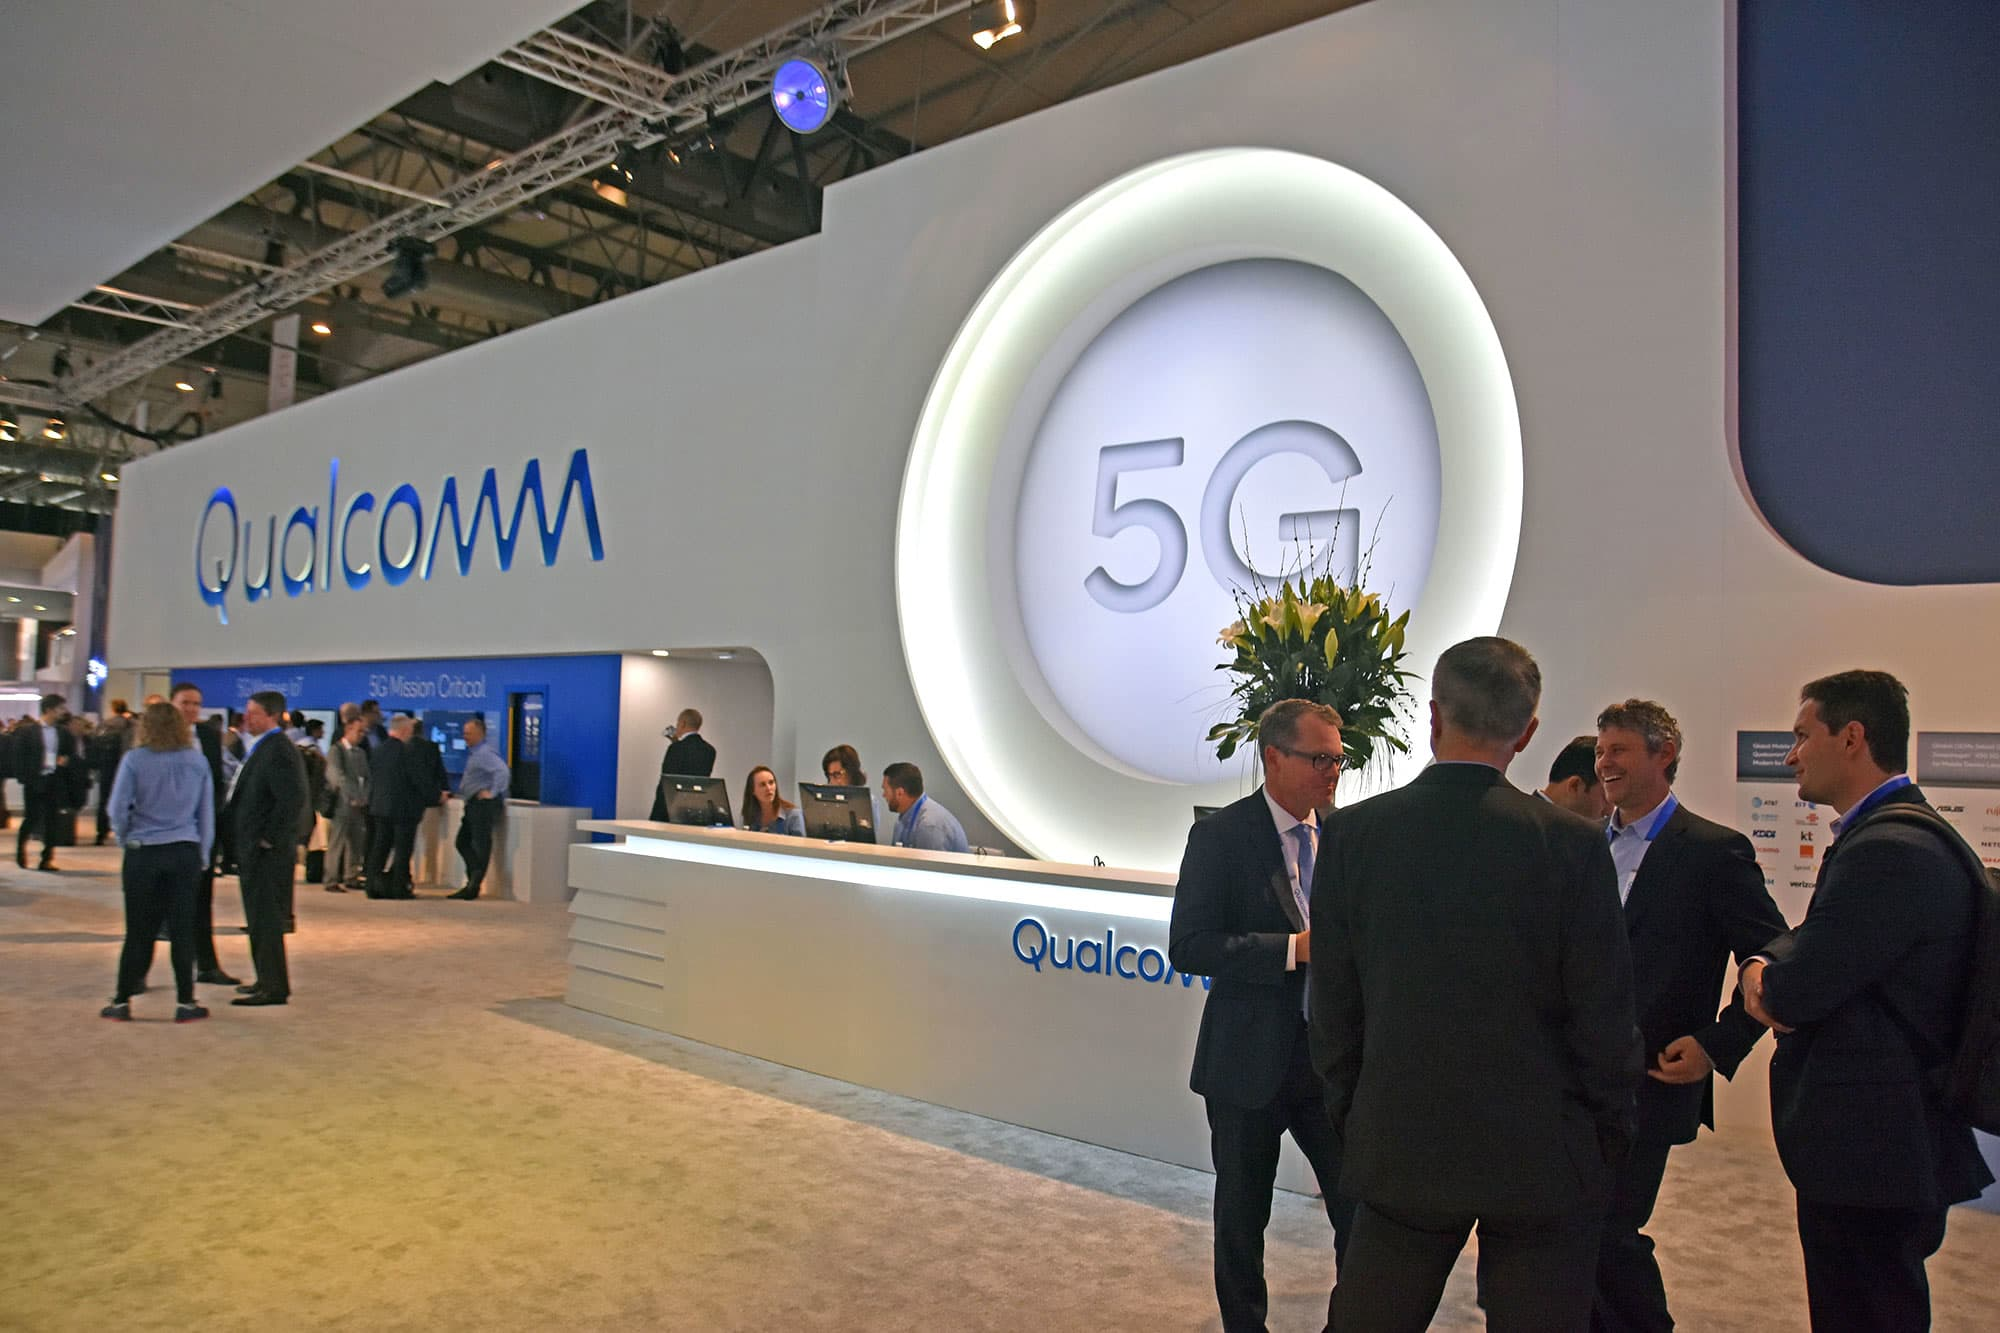 View of the phone company QUALCOMM technology 5G in the Mobile World Congress.